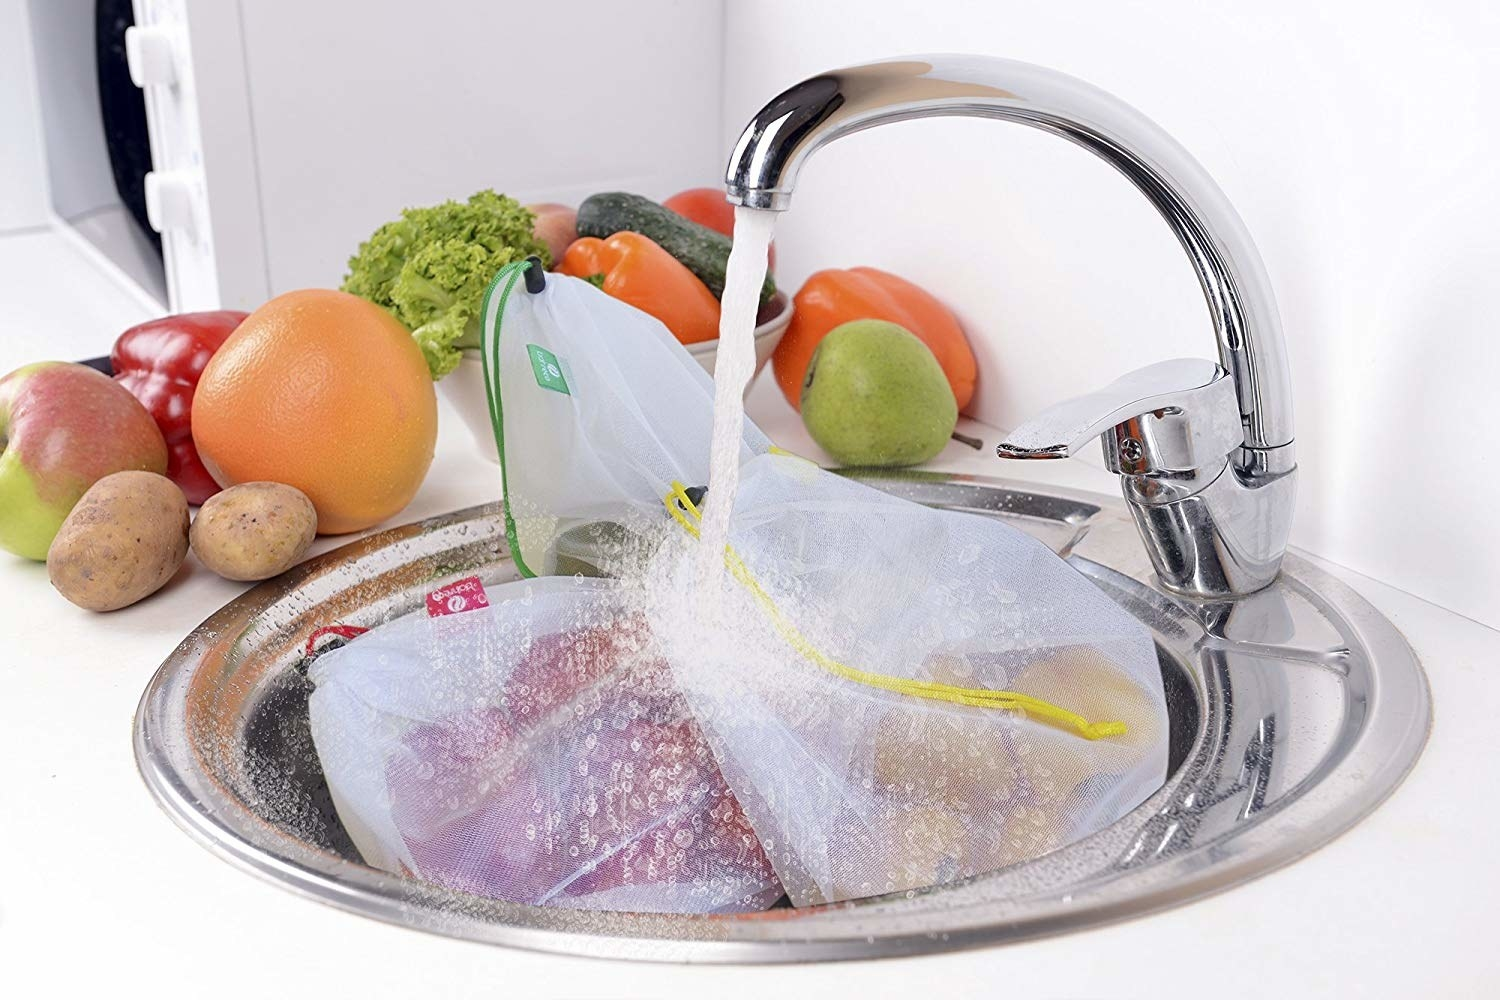 The reusable produce bags under running water.